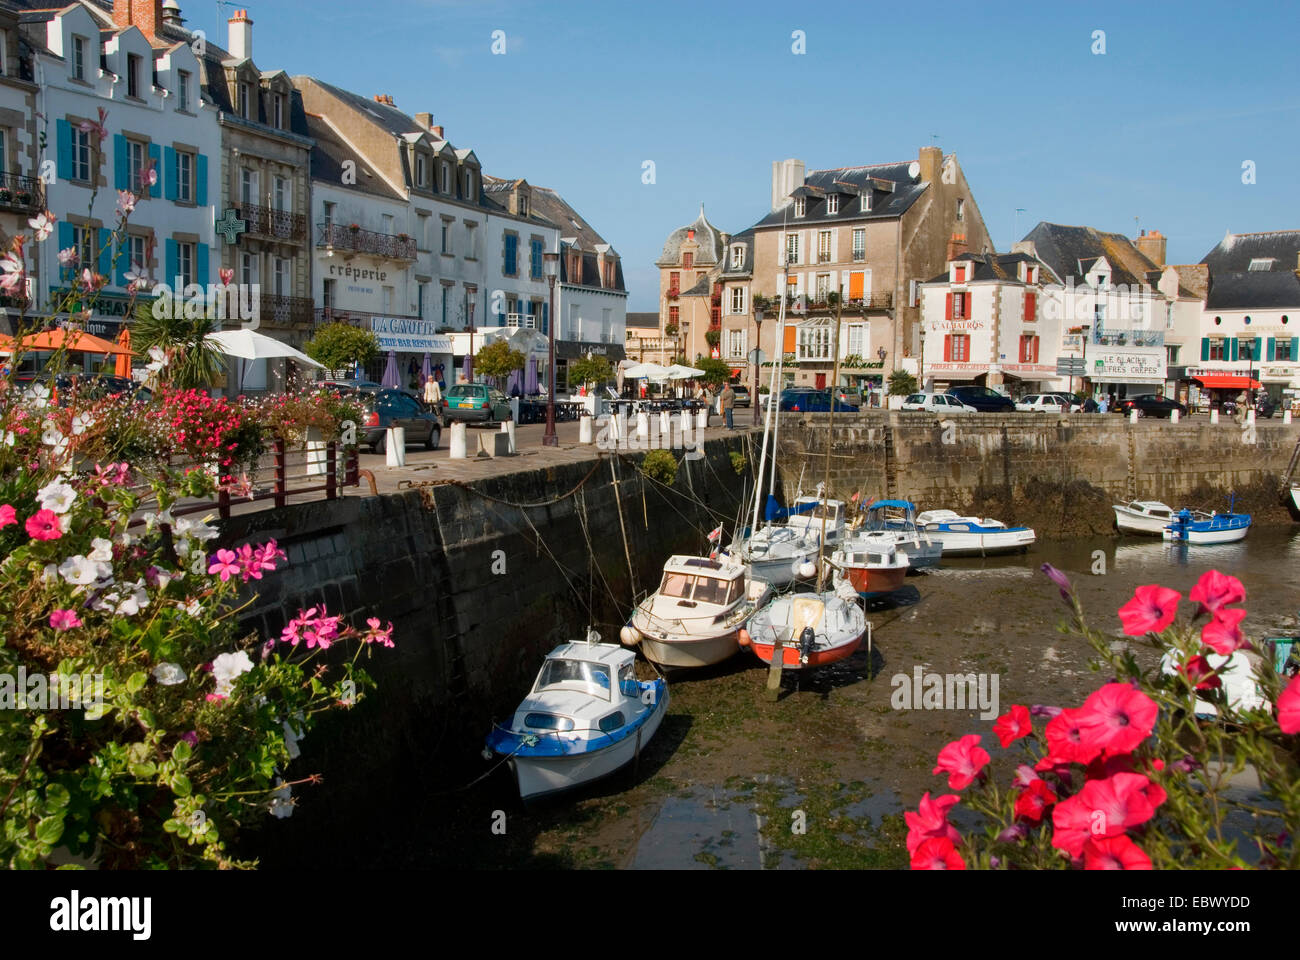 port of Le Croisic, France, Brittany, Le Croisic Stock Photo